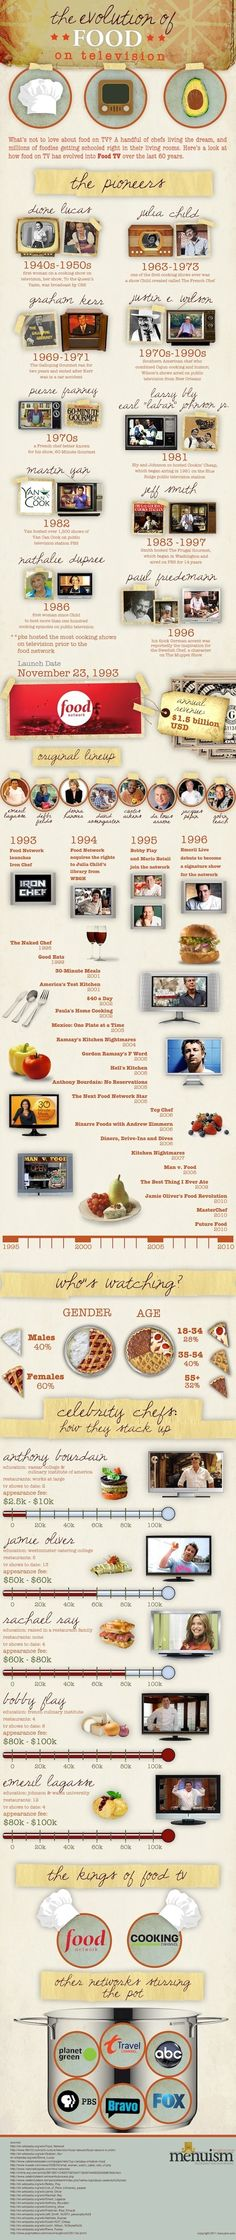 The Evolution of Food on TV